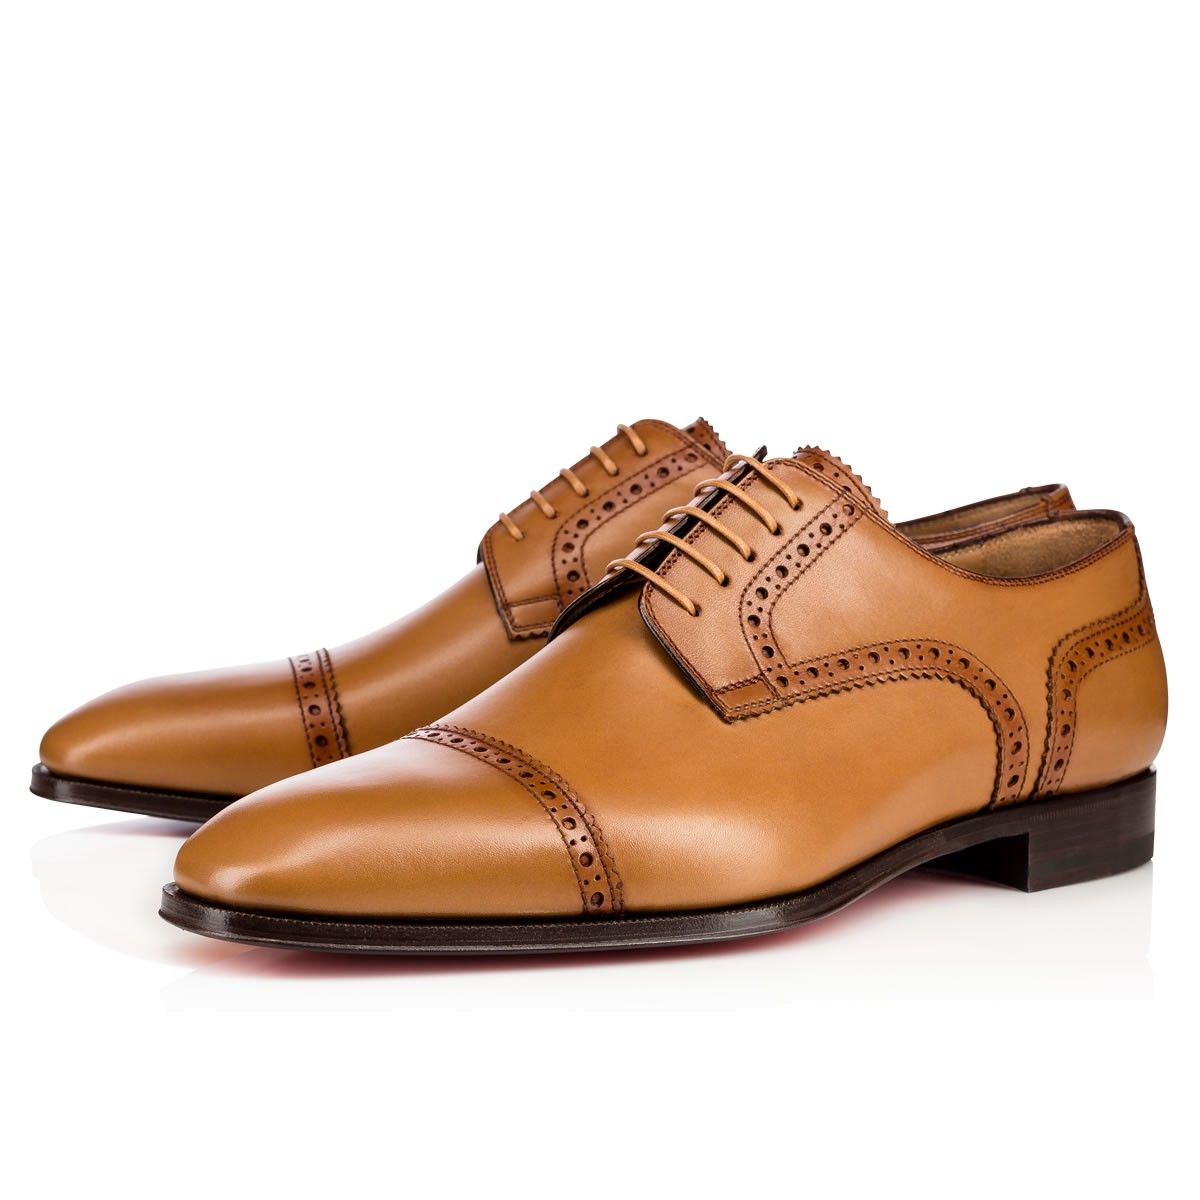 Cousin Charles Flat Laiton Leather - Men Shoes - Christian Louboutin